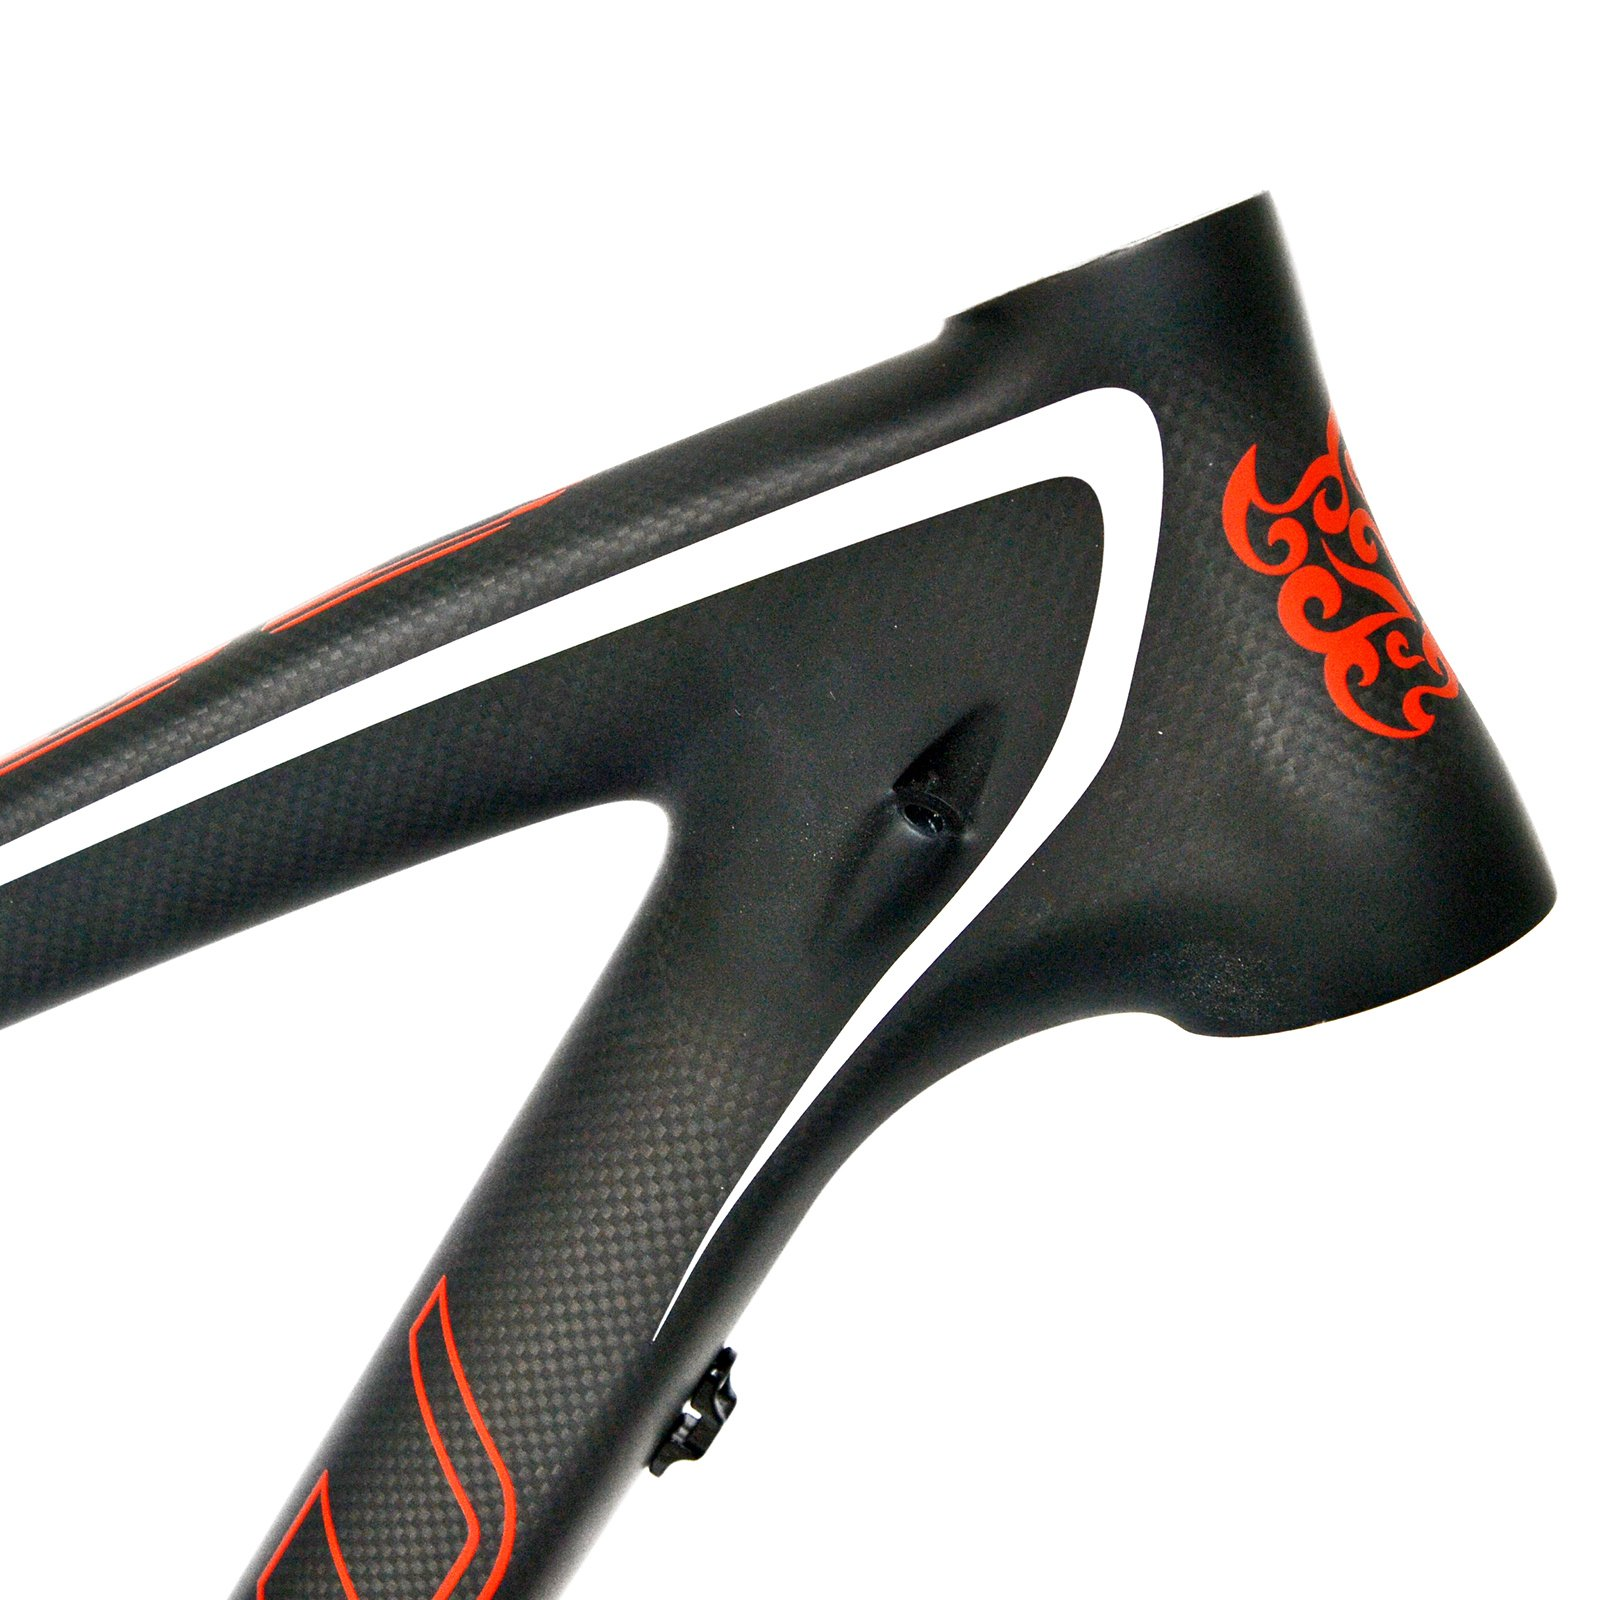 BEIOU 17-Inch 3k Carbon Fiber Mountain Bike Frame 27.5-Inch Matte Black Unibody Internal Cable Routing T800 Ultralight MTB B020A17Y by BEIOU (Image #2)